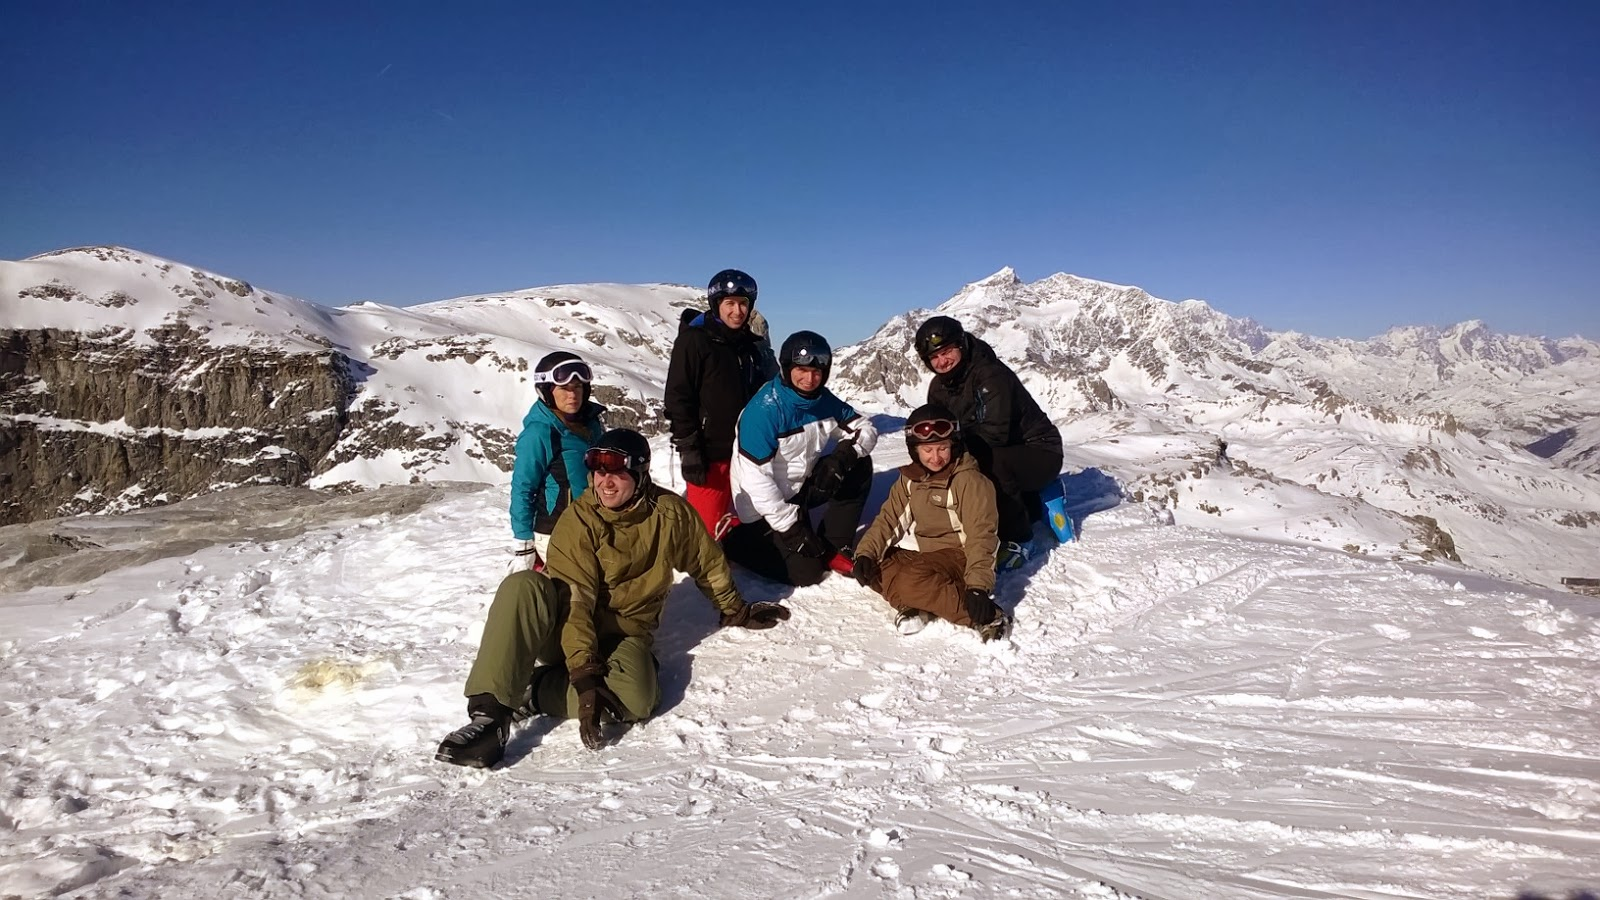 159 Supply Regiment's skiing team in front of some snowy mountains in France.